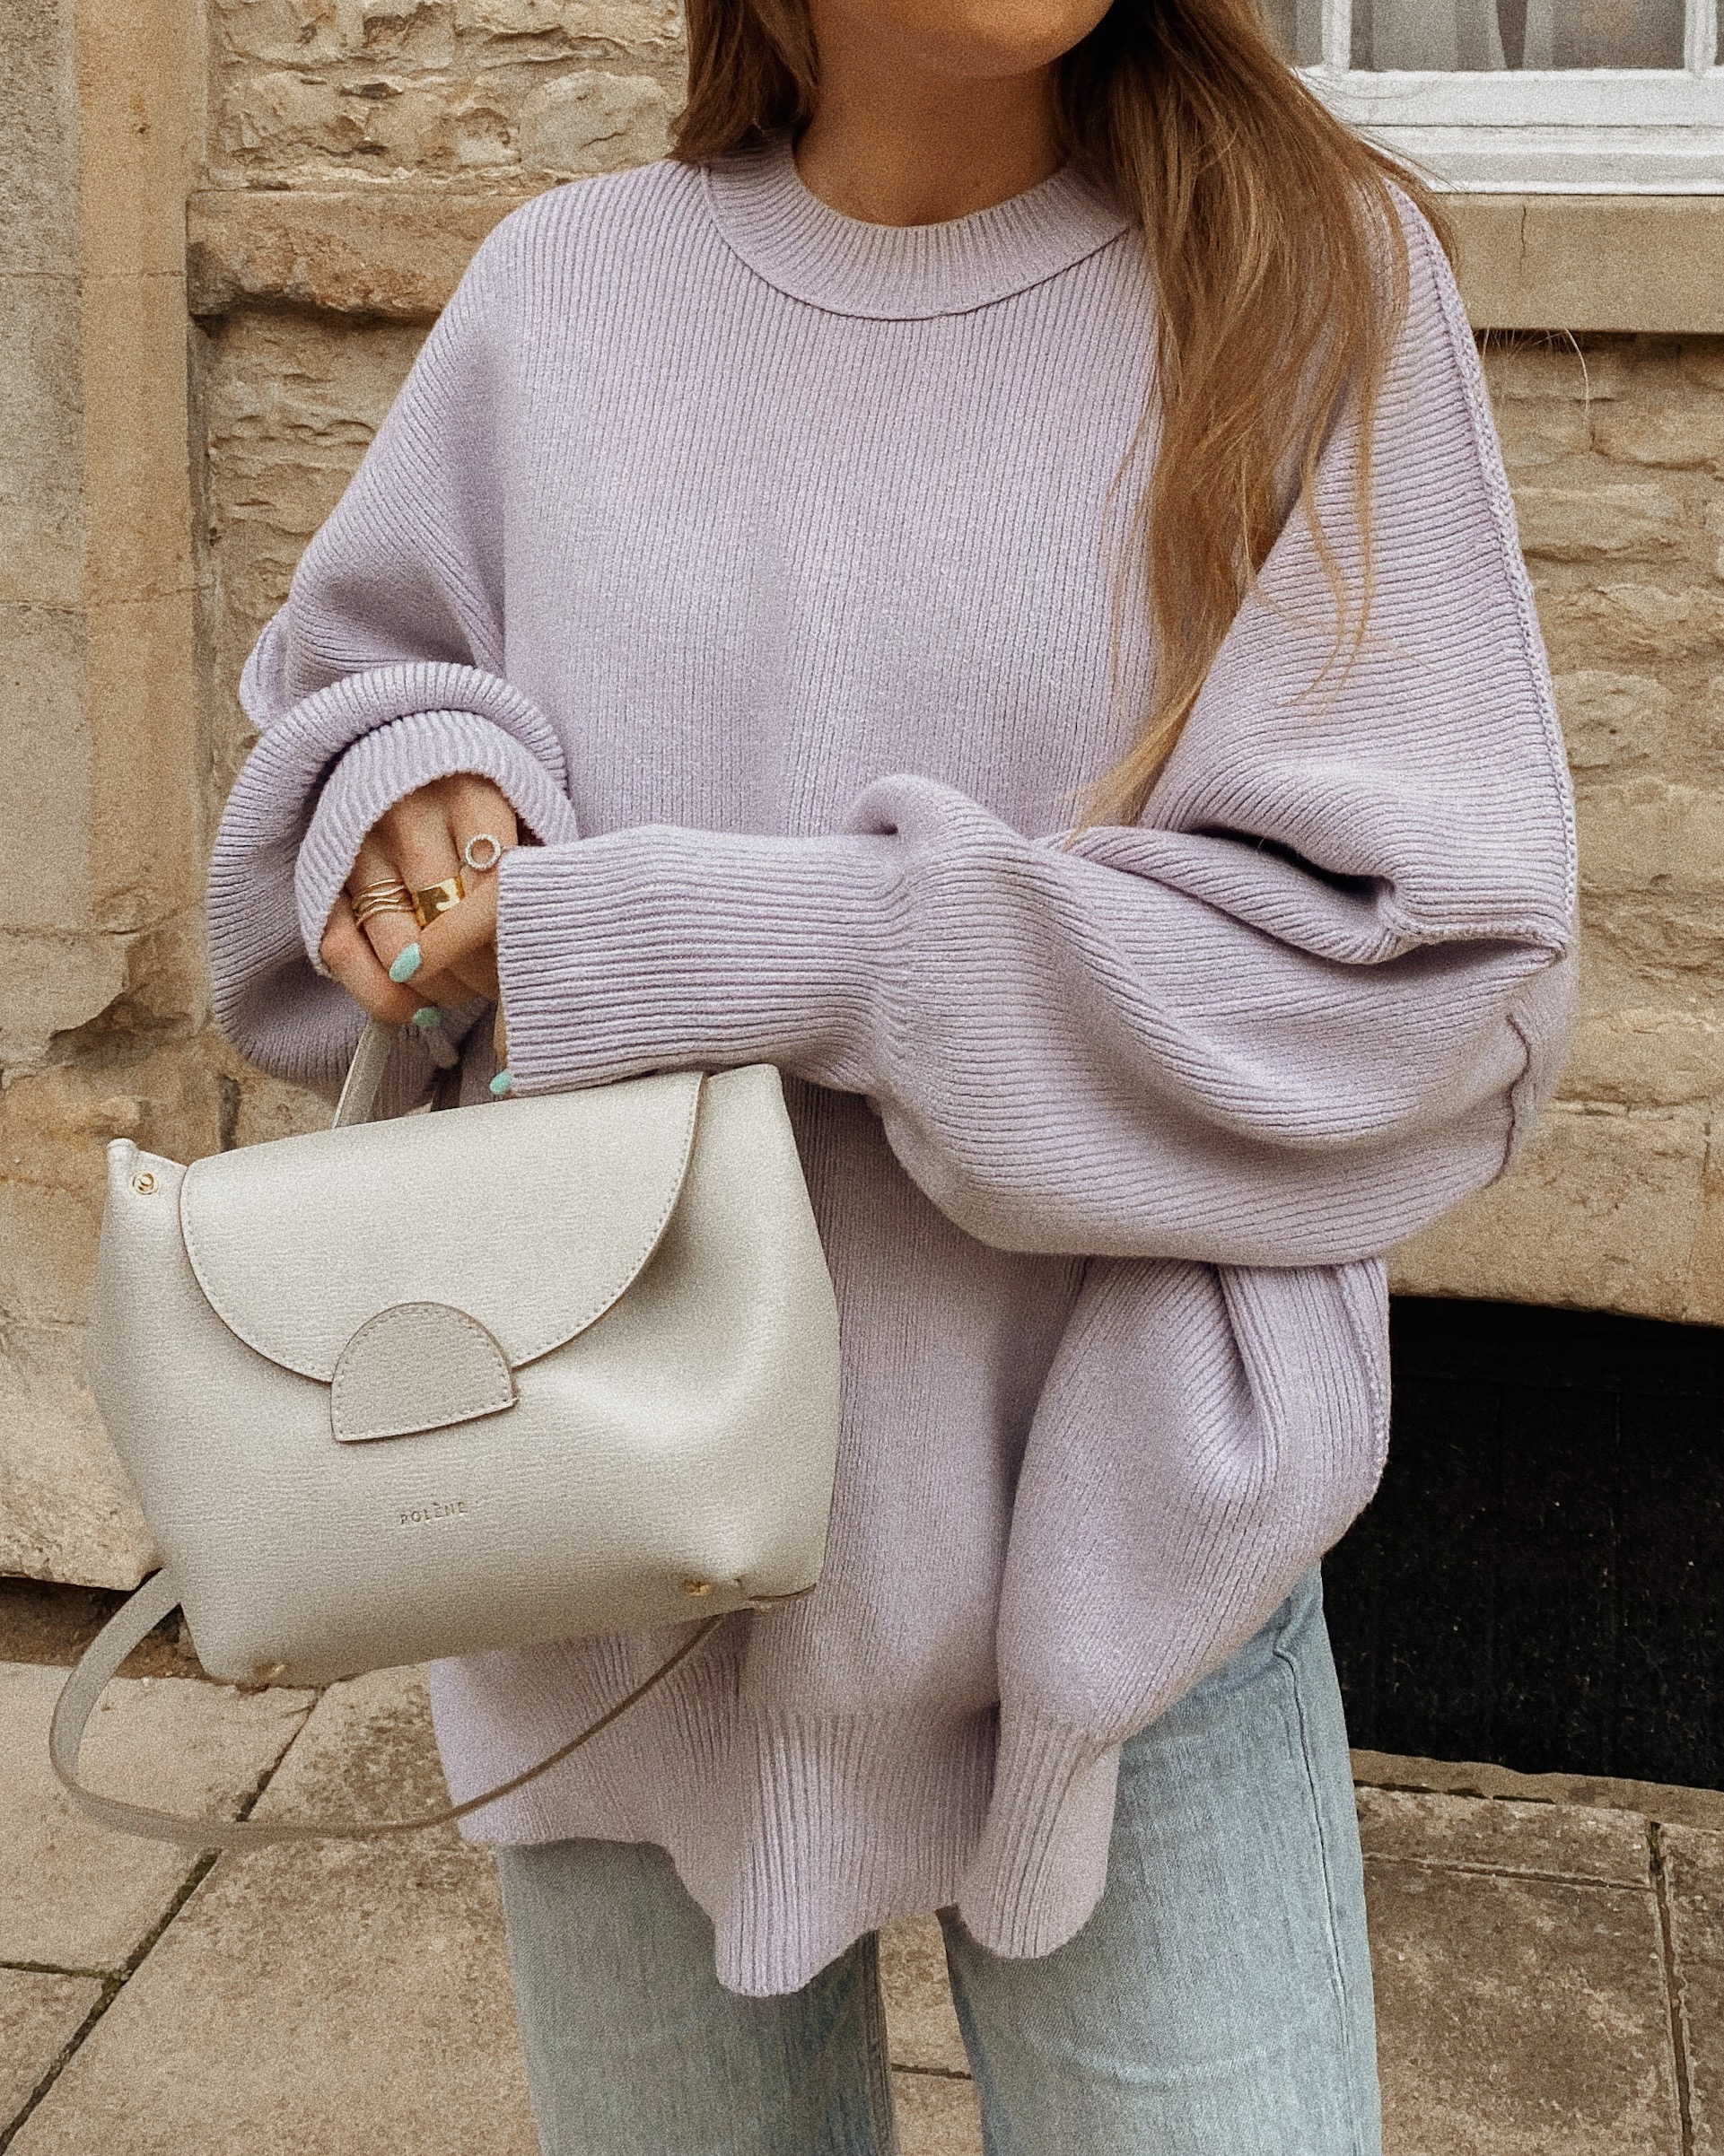 Free People Lilac Jumper - Autumn Outfit